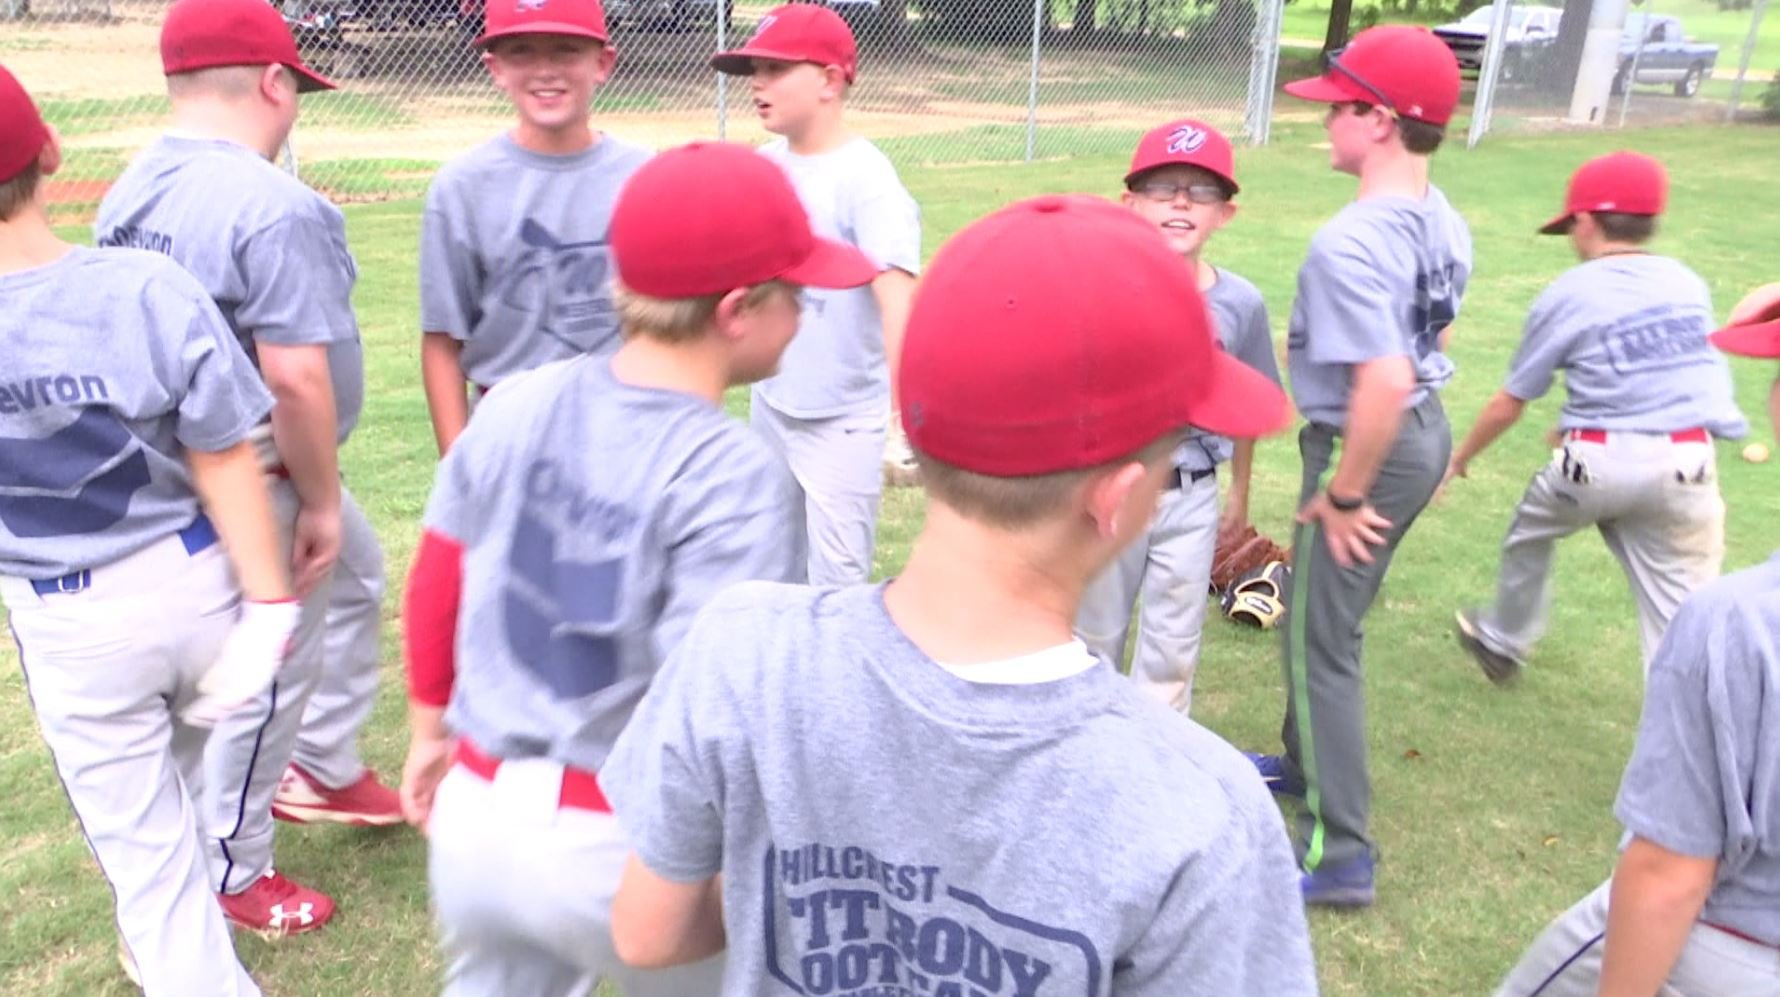 Westside's 9U all-star team is pictured at a recent practice. Photo: Bri MacNaught, FOX10 News